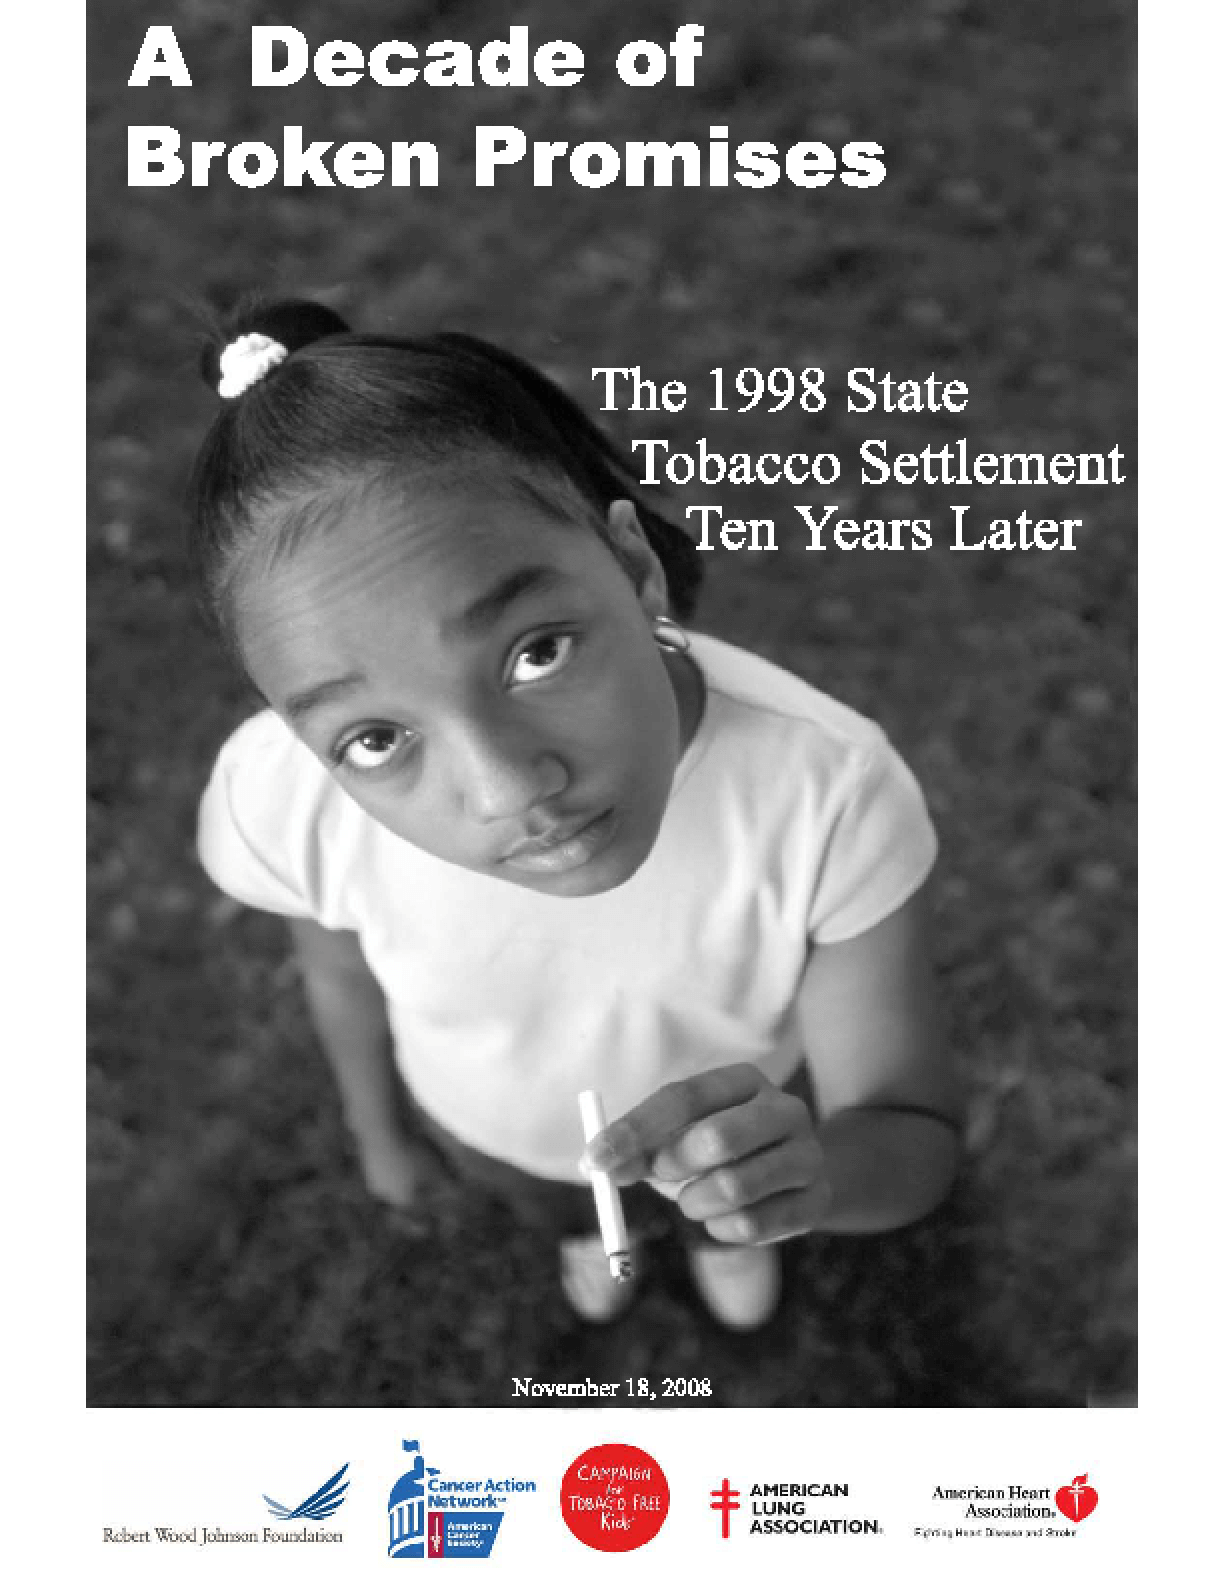 A Decade of Broken Promises: The 1998 State Tobacco Settlement Ten Years Later